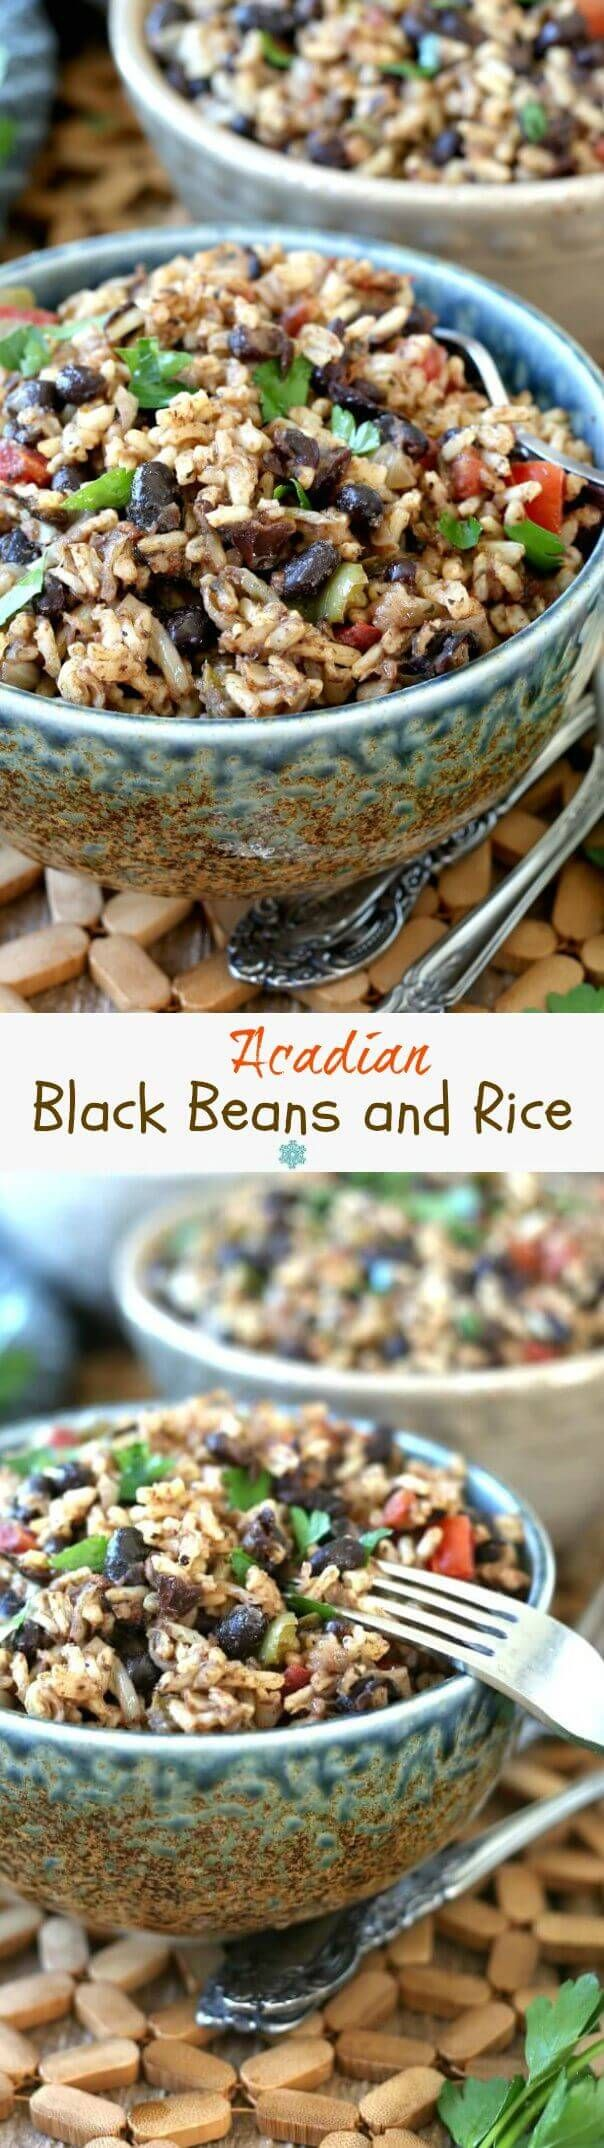 Acadian Black Beans and Rice is an updated version of the red beans and rice classic. Made with a variety of spices popular in Cajun communities of Louisiana. Easy and spicy! ~ https://veganinthefreezer.com